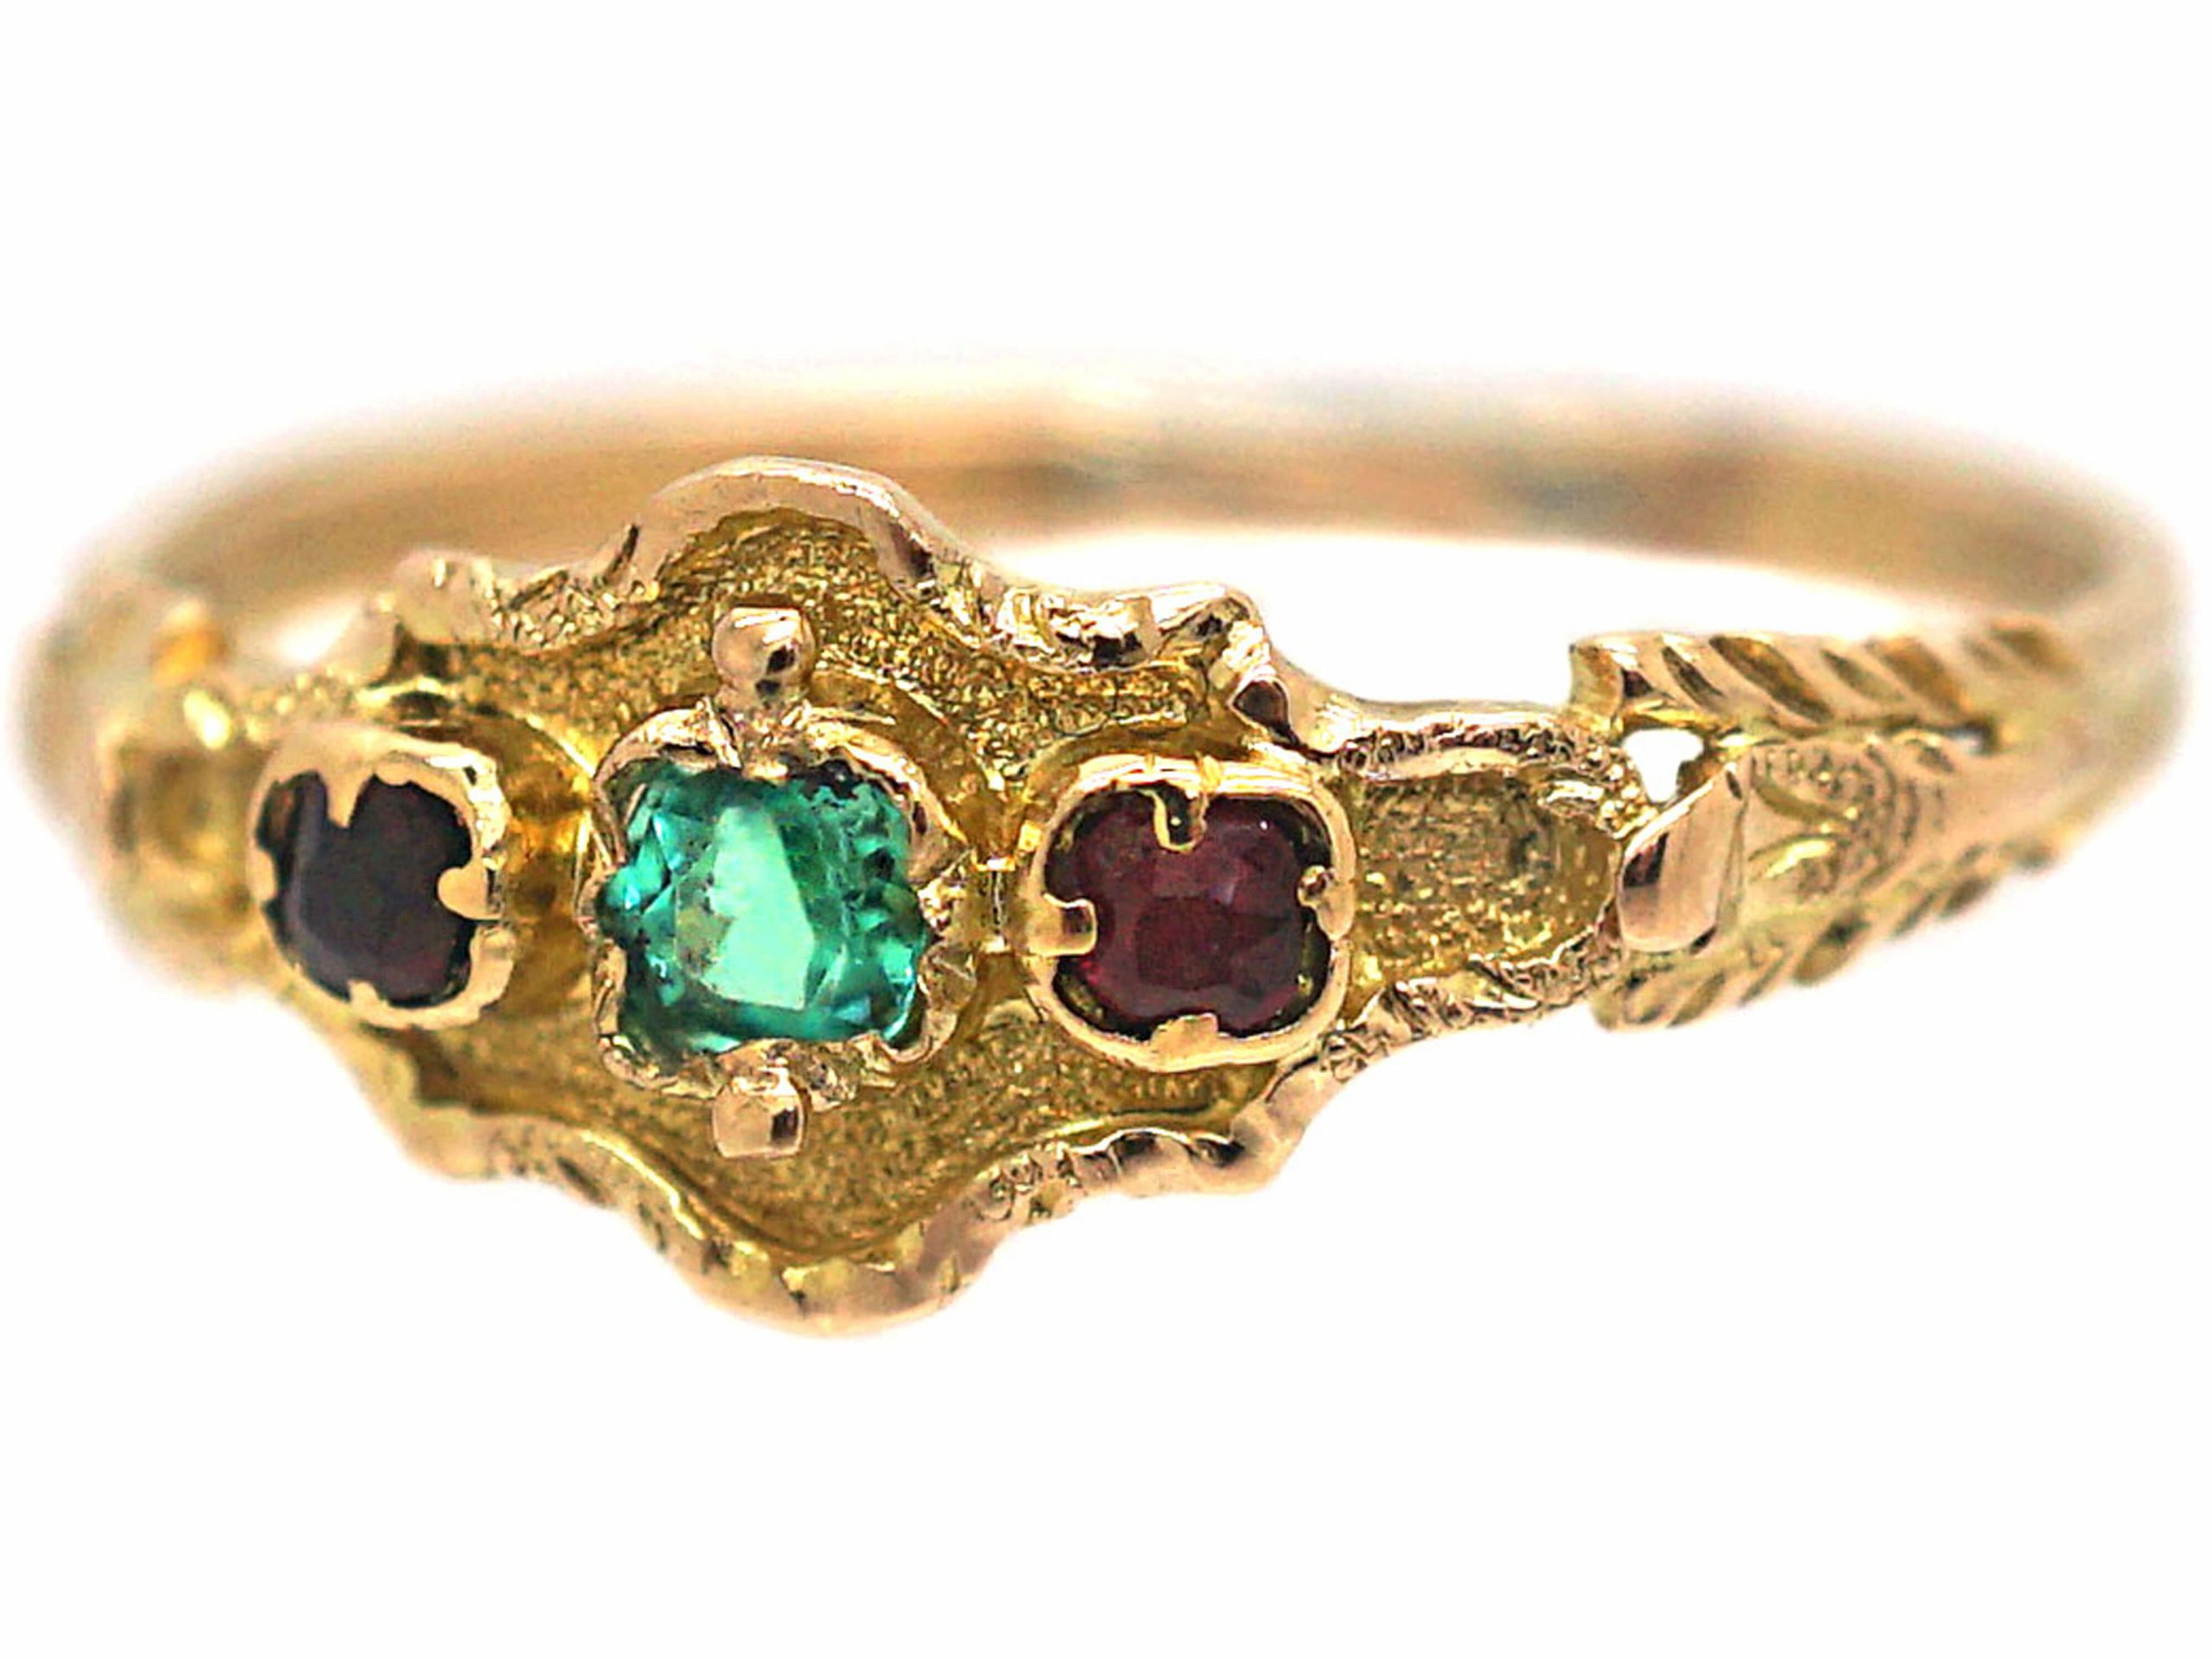 Regency 15ct Gold Emerald & Ruby Three Stone Ring with Ornate gold Decoration